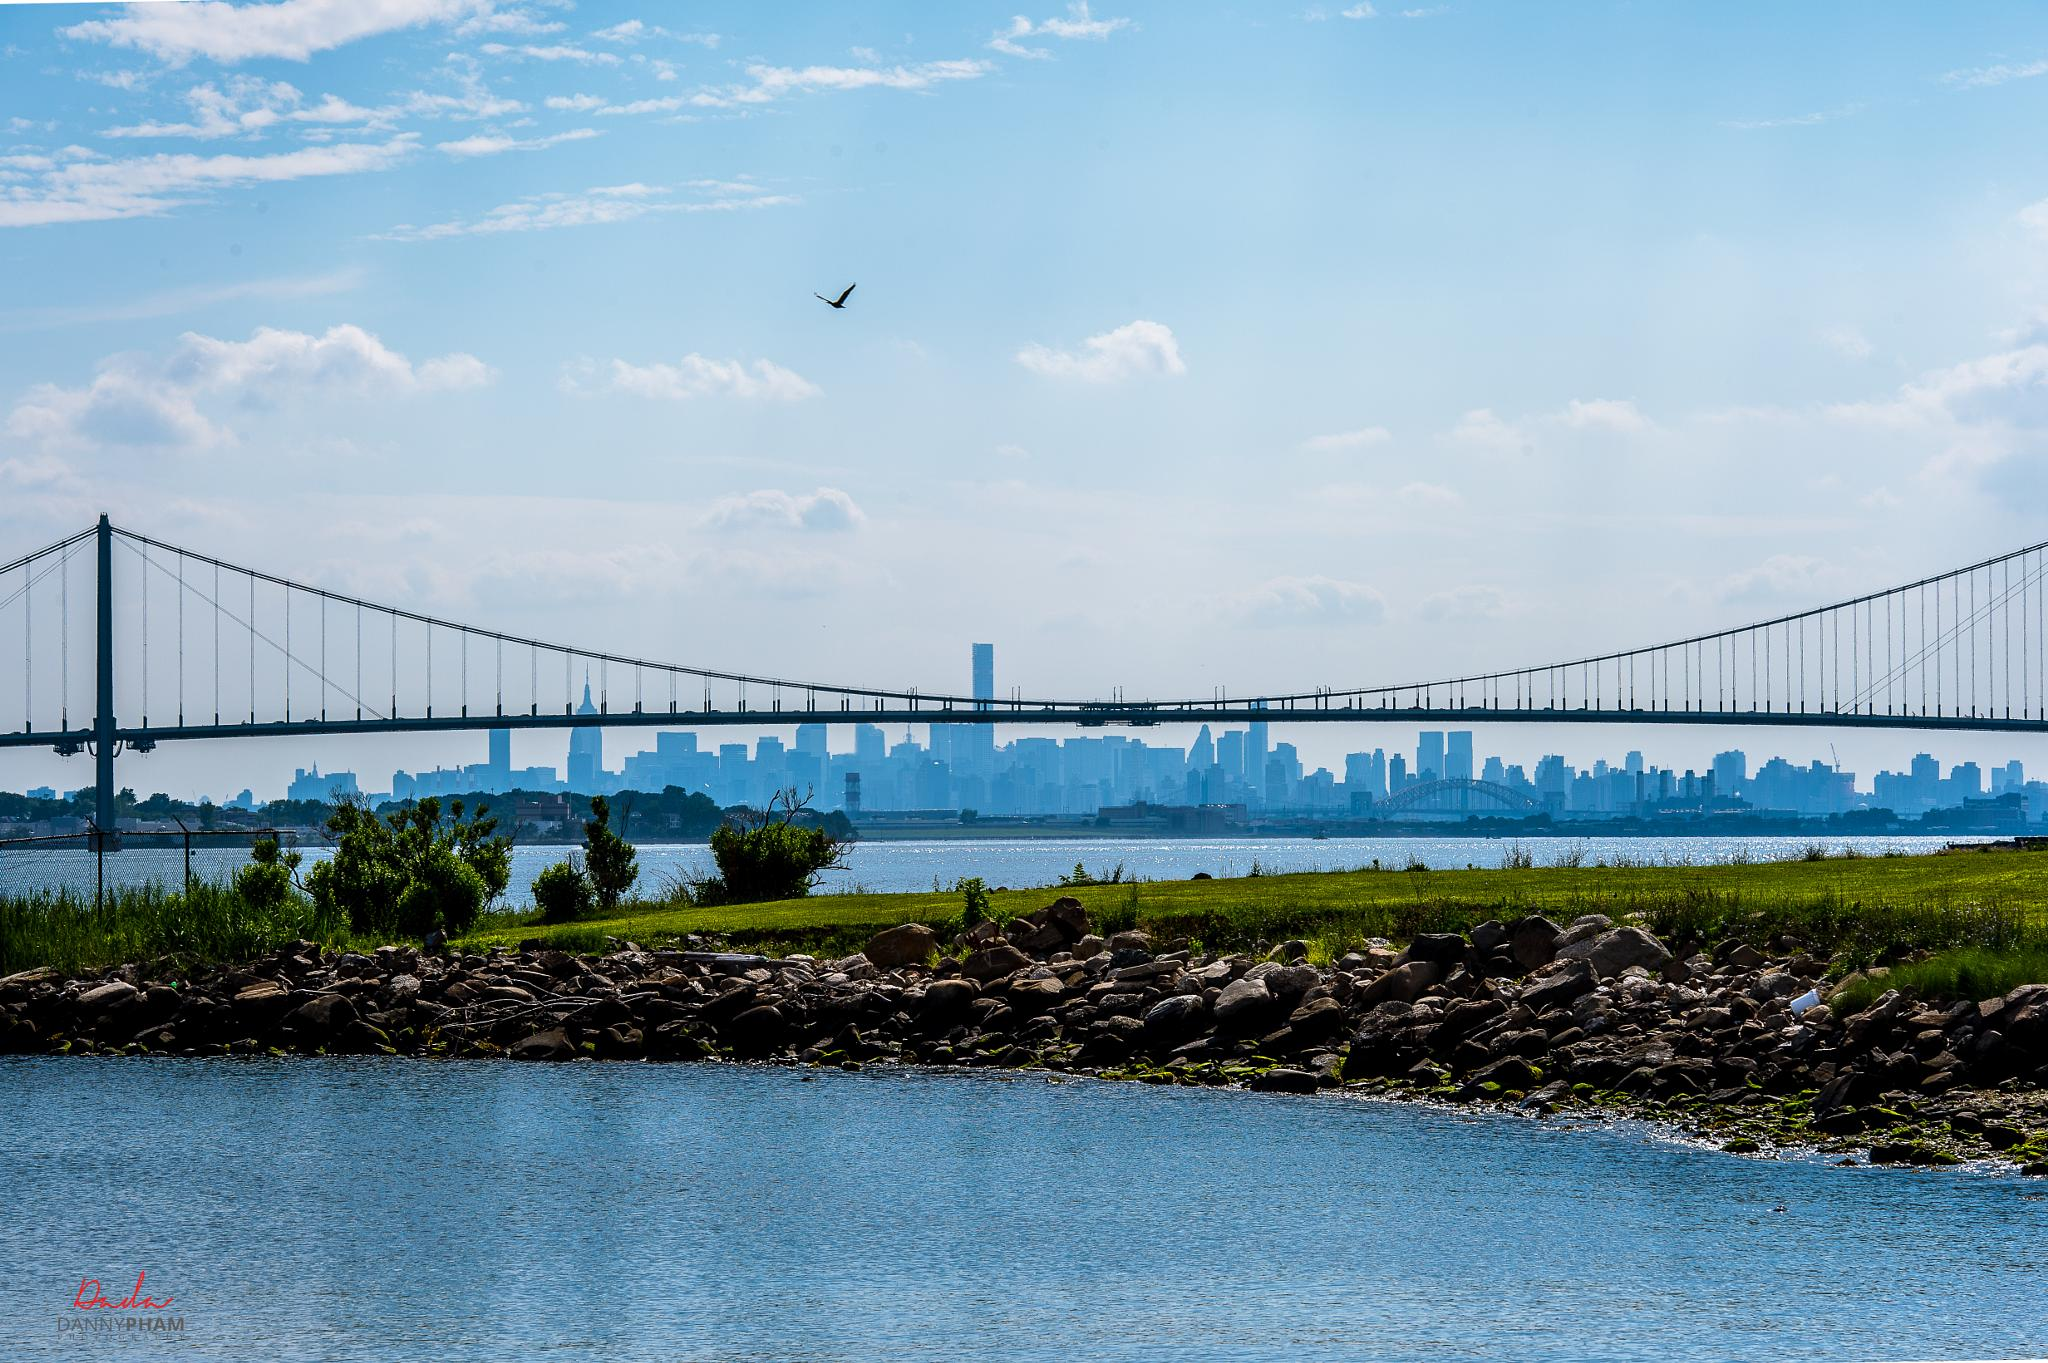 White Stone Bridge with New York City view from a distance by Danny Pham